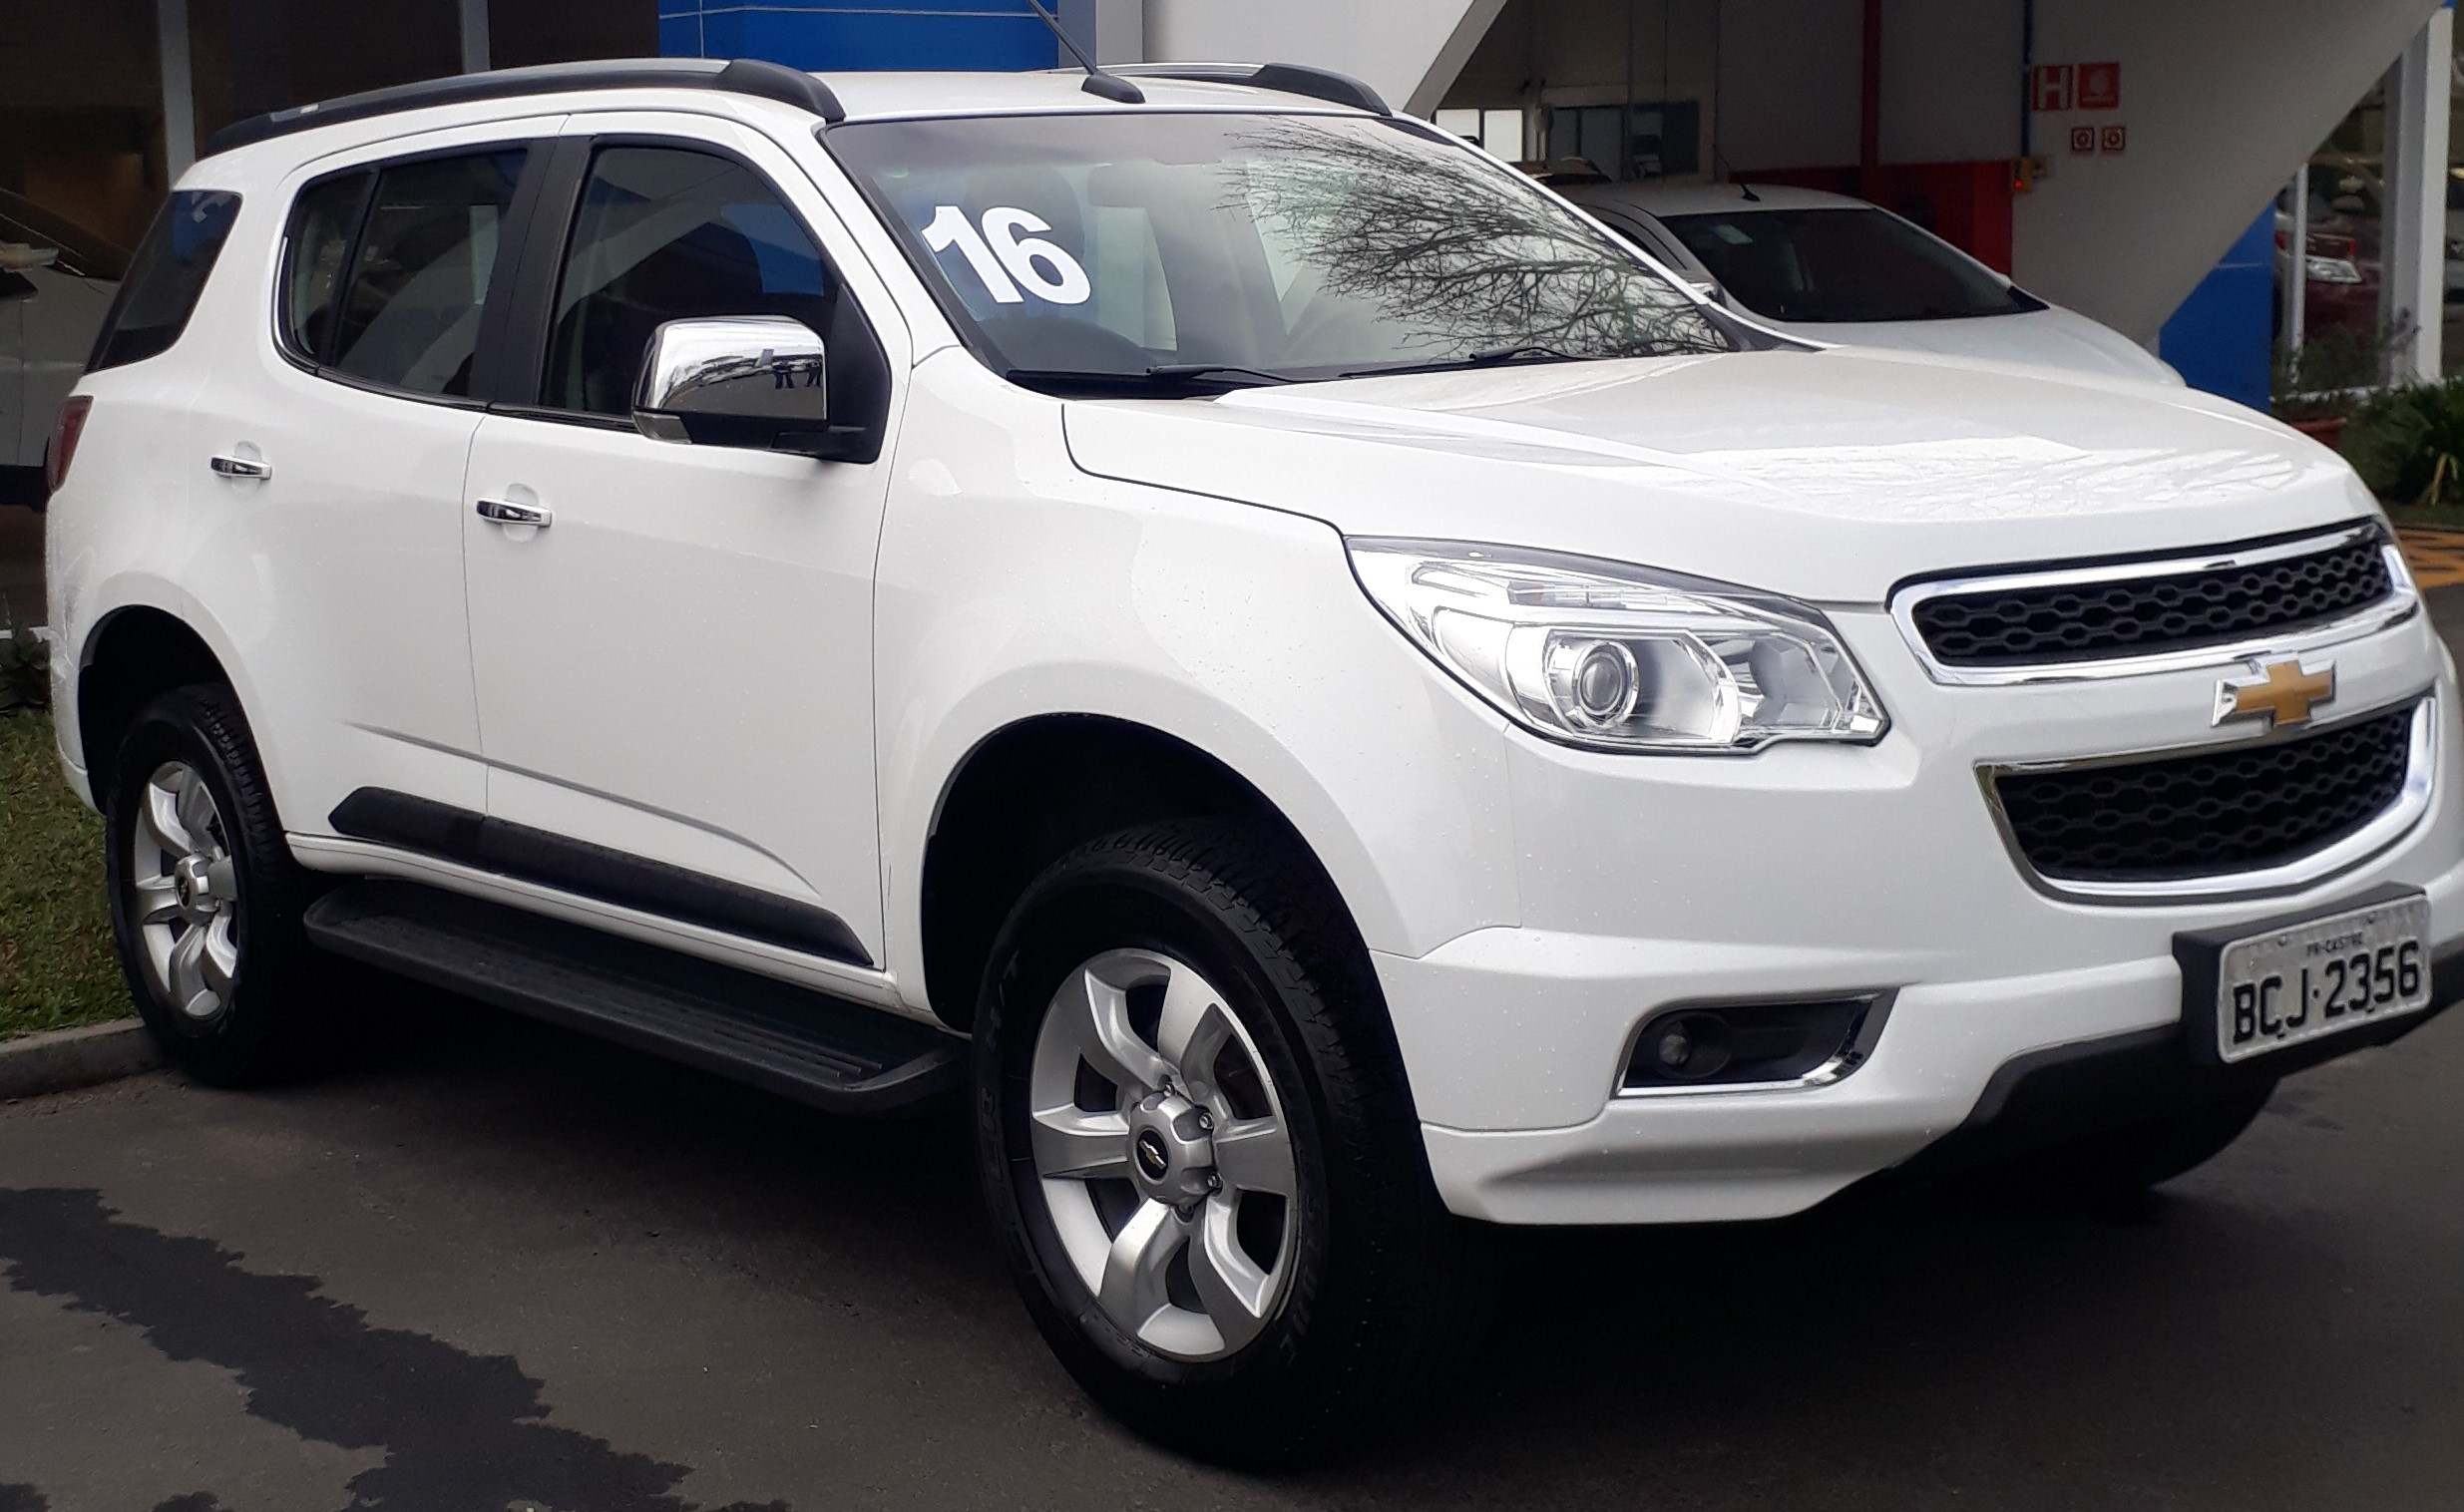 CHEVROLET TRAILBLAZER LTZ 3.6 2016